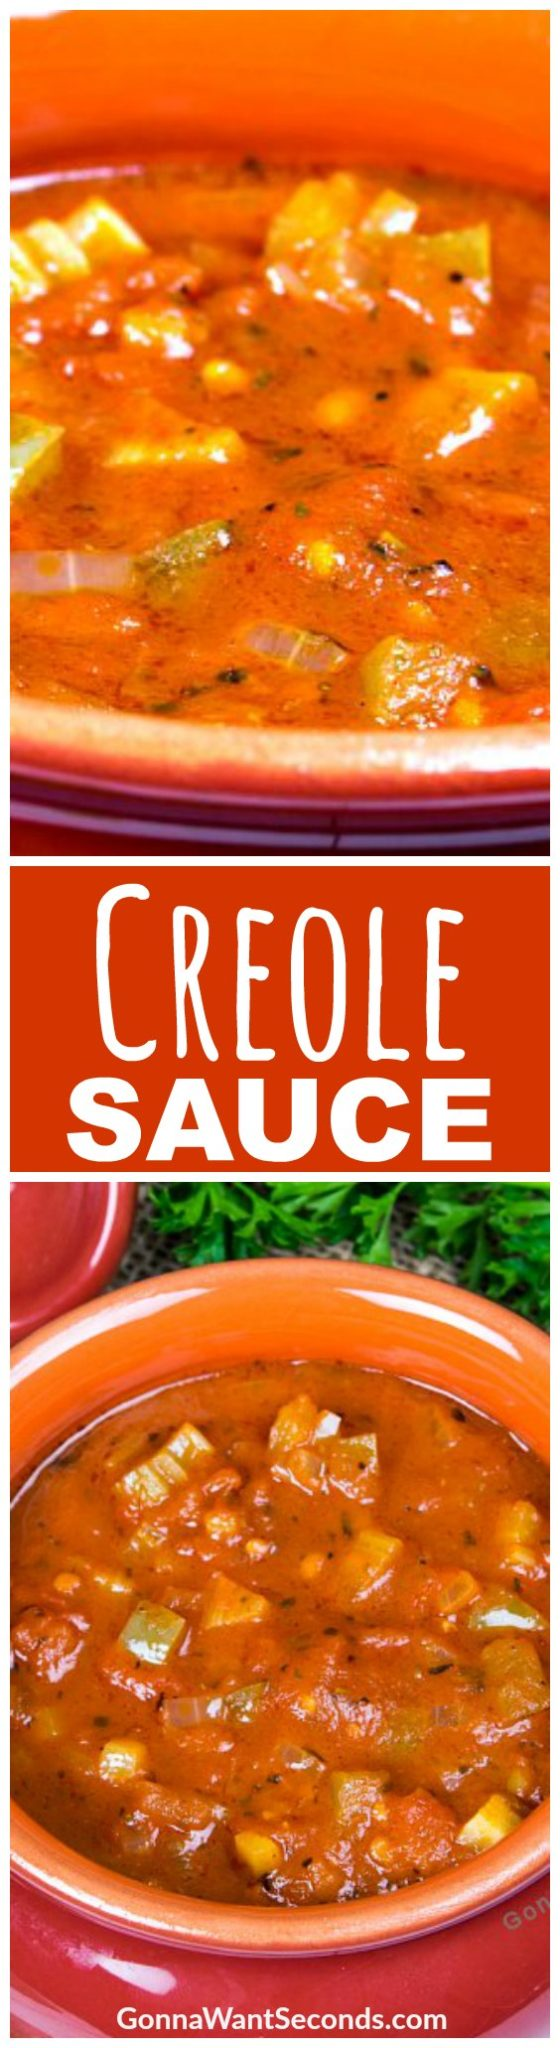 Jazz up dinner time with this authentic Creole Sauce recipe. Simple ingredients create a complex sauce guaranteed to start a Louisiana fete at your dining table! Creole Sauce is great served with chicken, shrimp, jambalaya, or veggies. Easy to make and will enhance your meal with a spicy twist. #Recipe #Easy #DeepSouth #Soul #Meals #Chicken #ForShrimp #NewOrleans #Spicy #Cajun #Creole #Sauce #Creamy #Dishes #CajunSeasoning #Dinners #Simple #Ingredients #GlutenFree #TomatoSauce